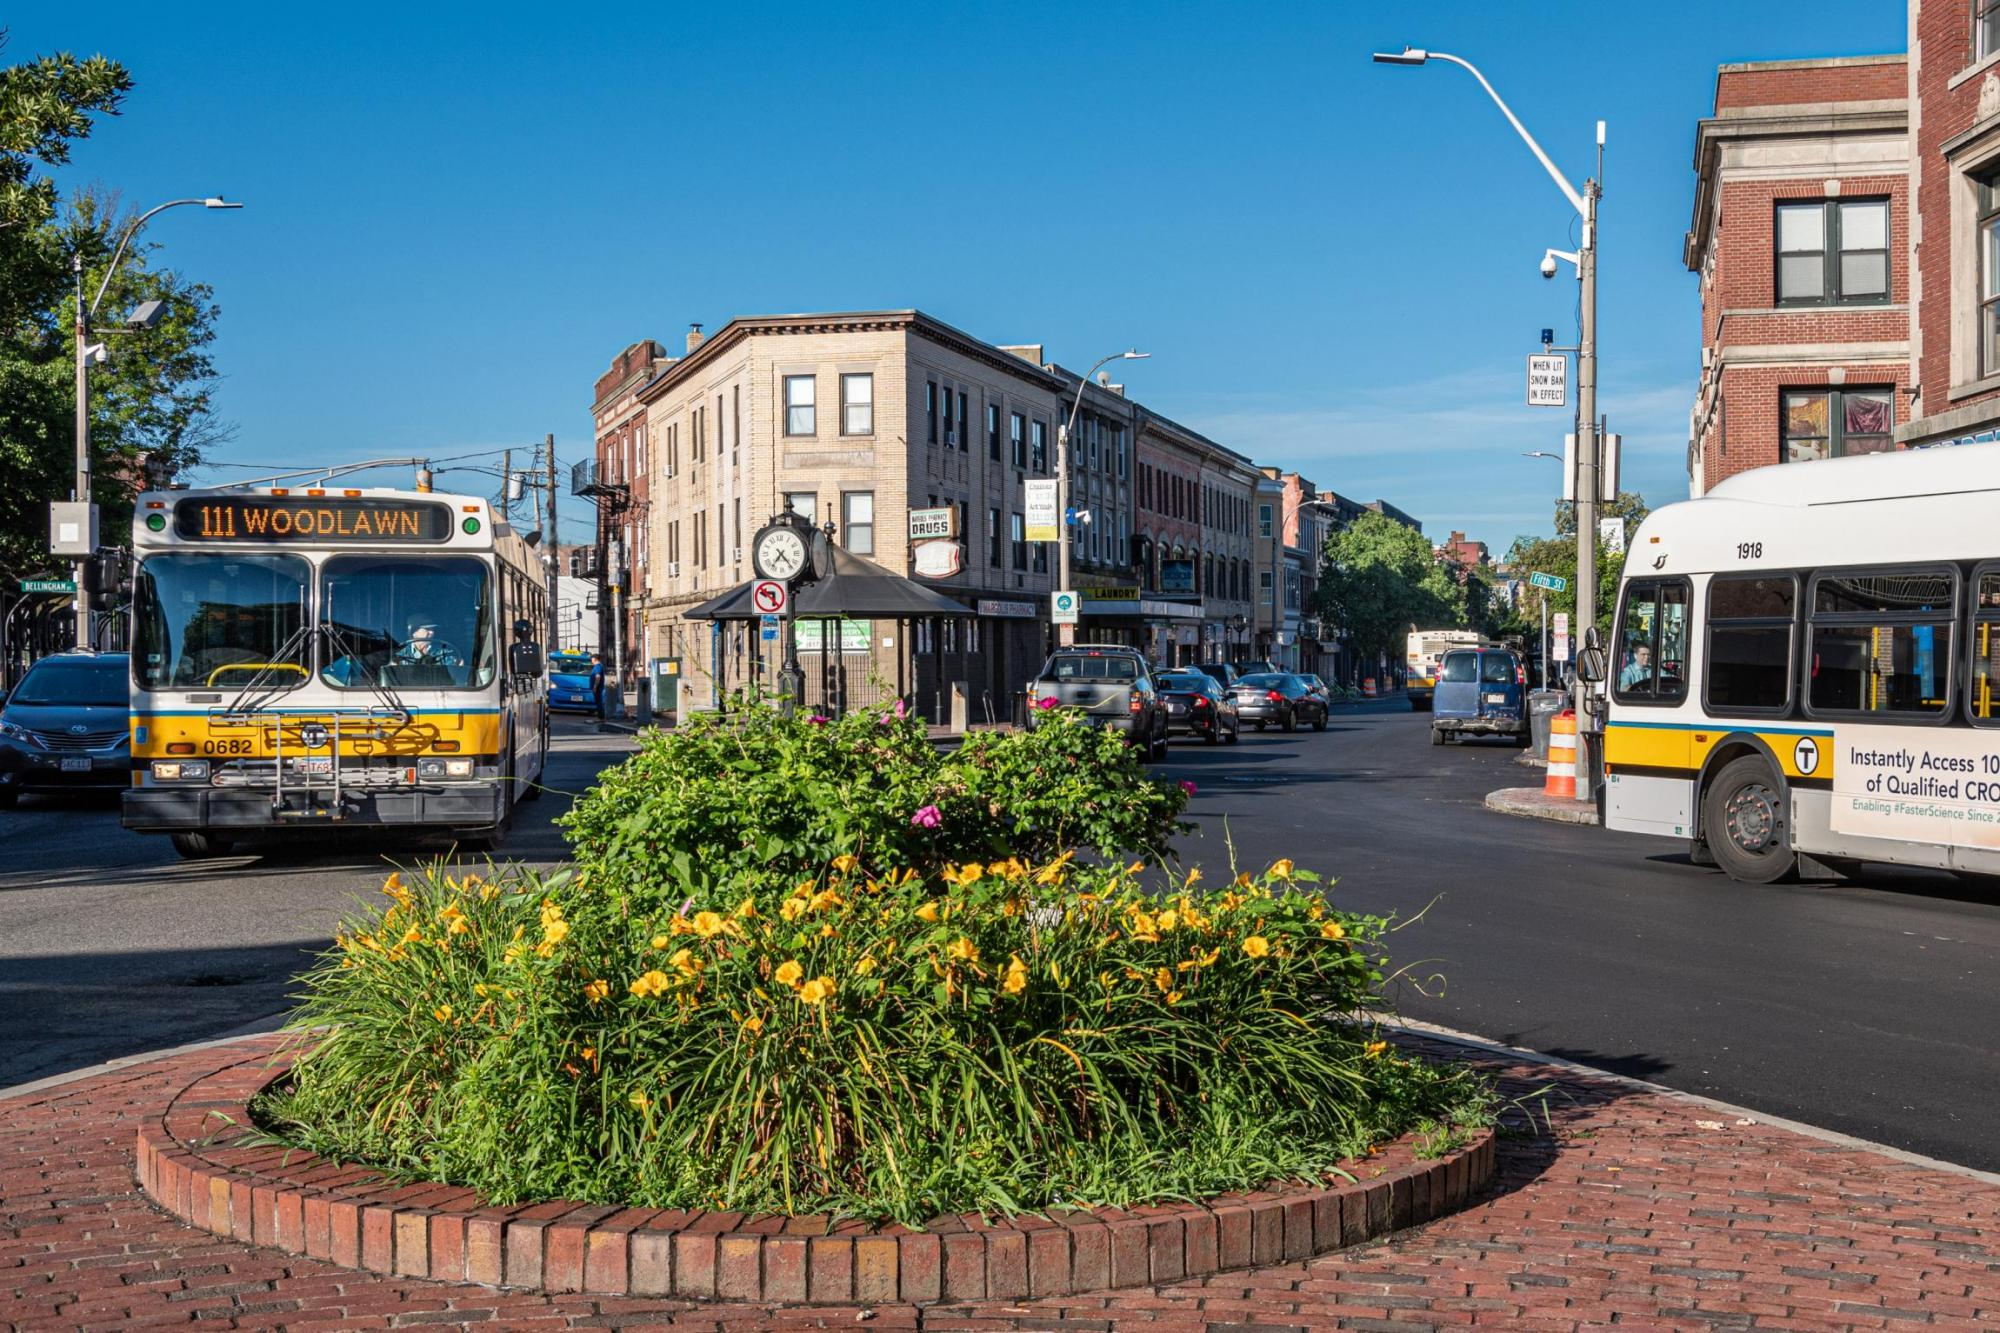 Route 111 Bus in a roundabout in Chelsea, during summertime